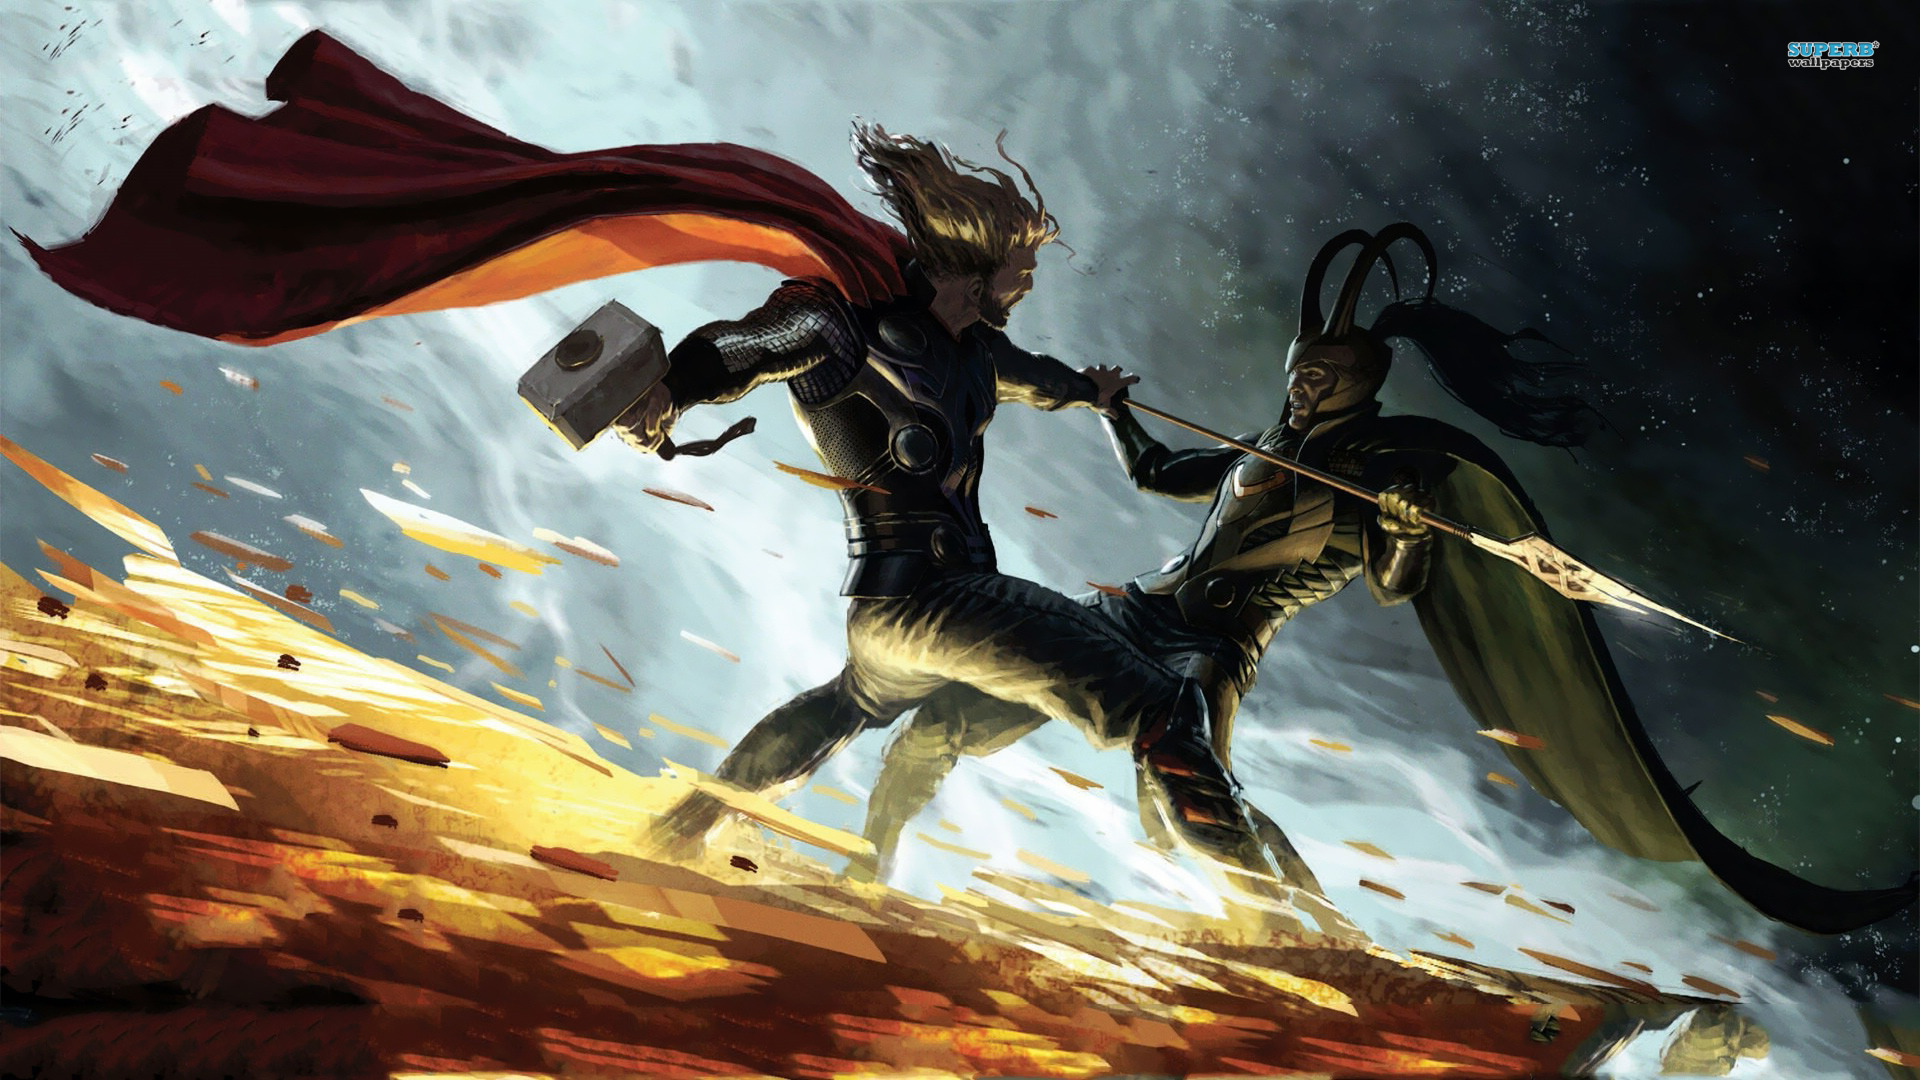 thor-vs-loki-hd-wallpapers-download-free